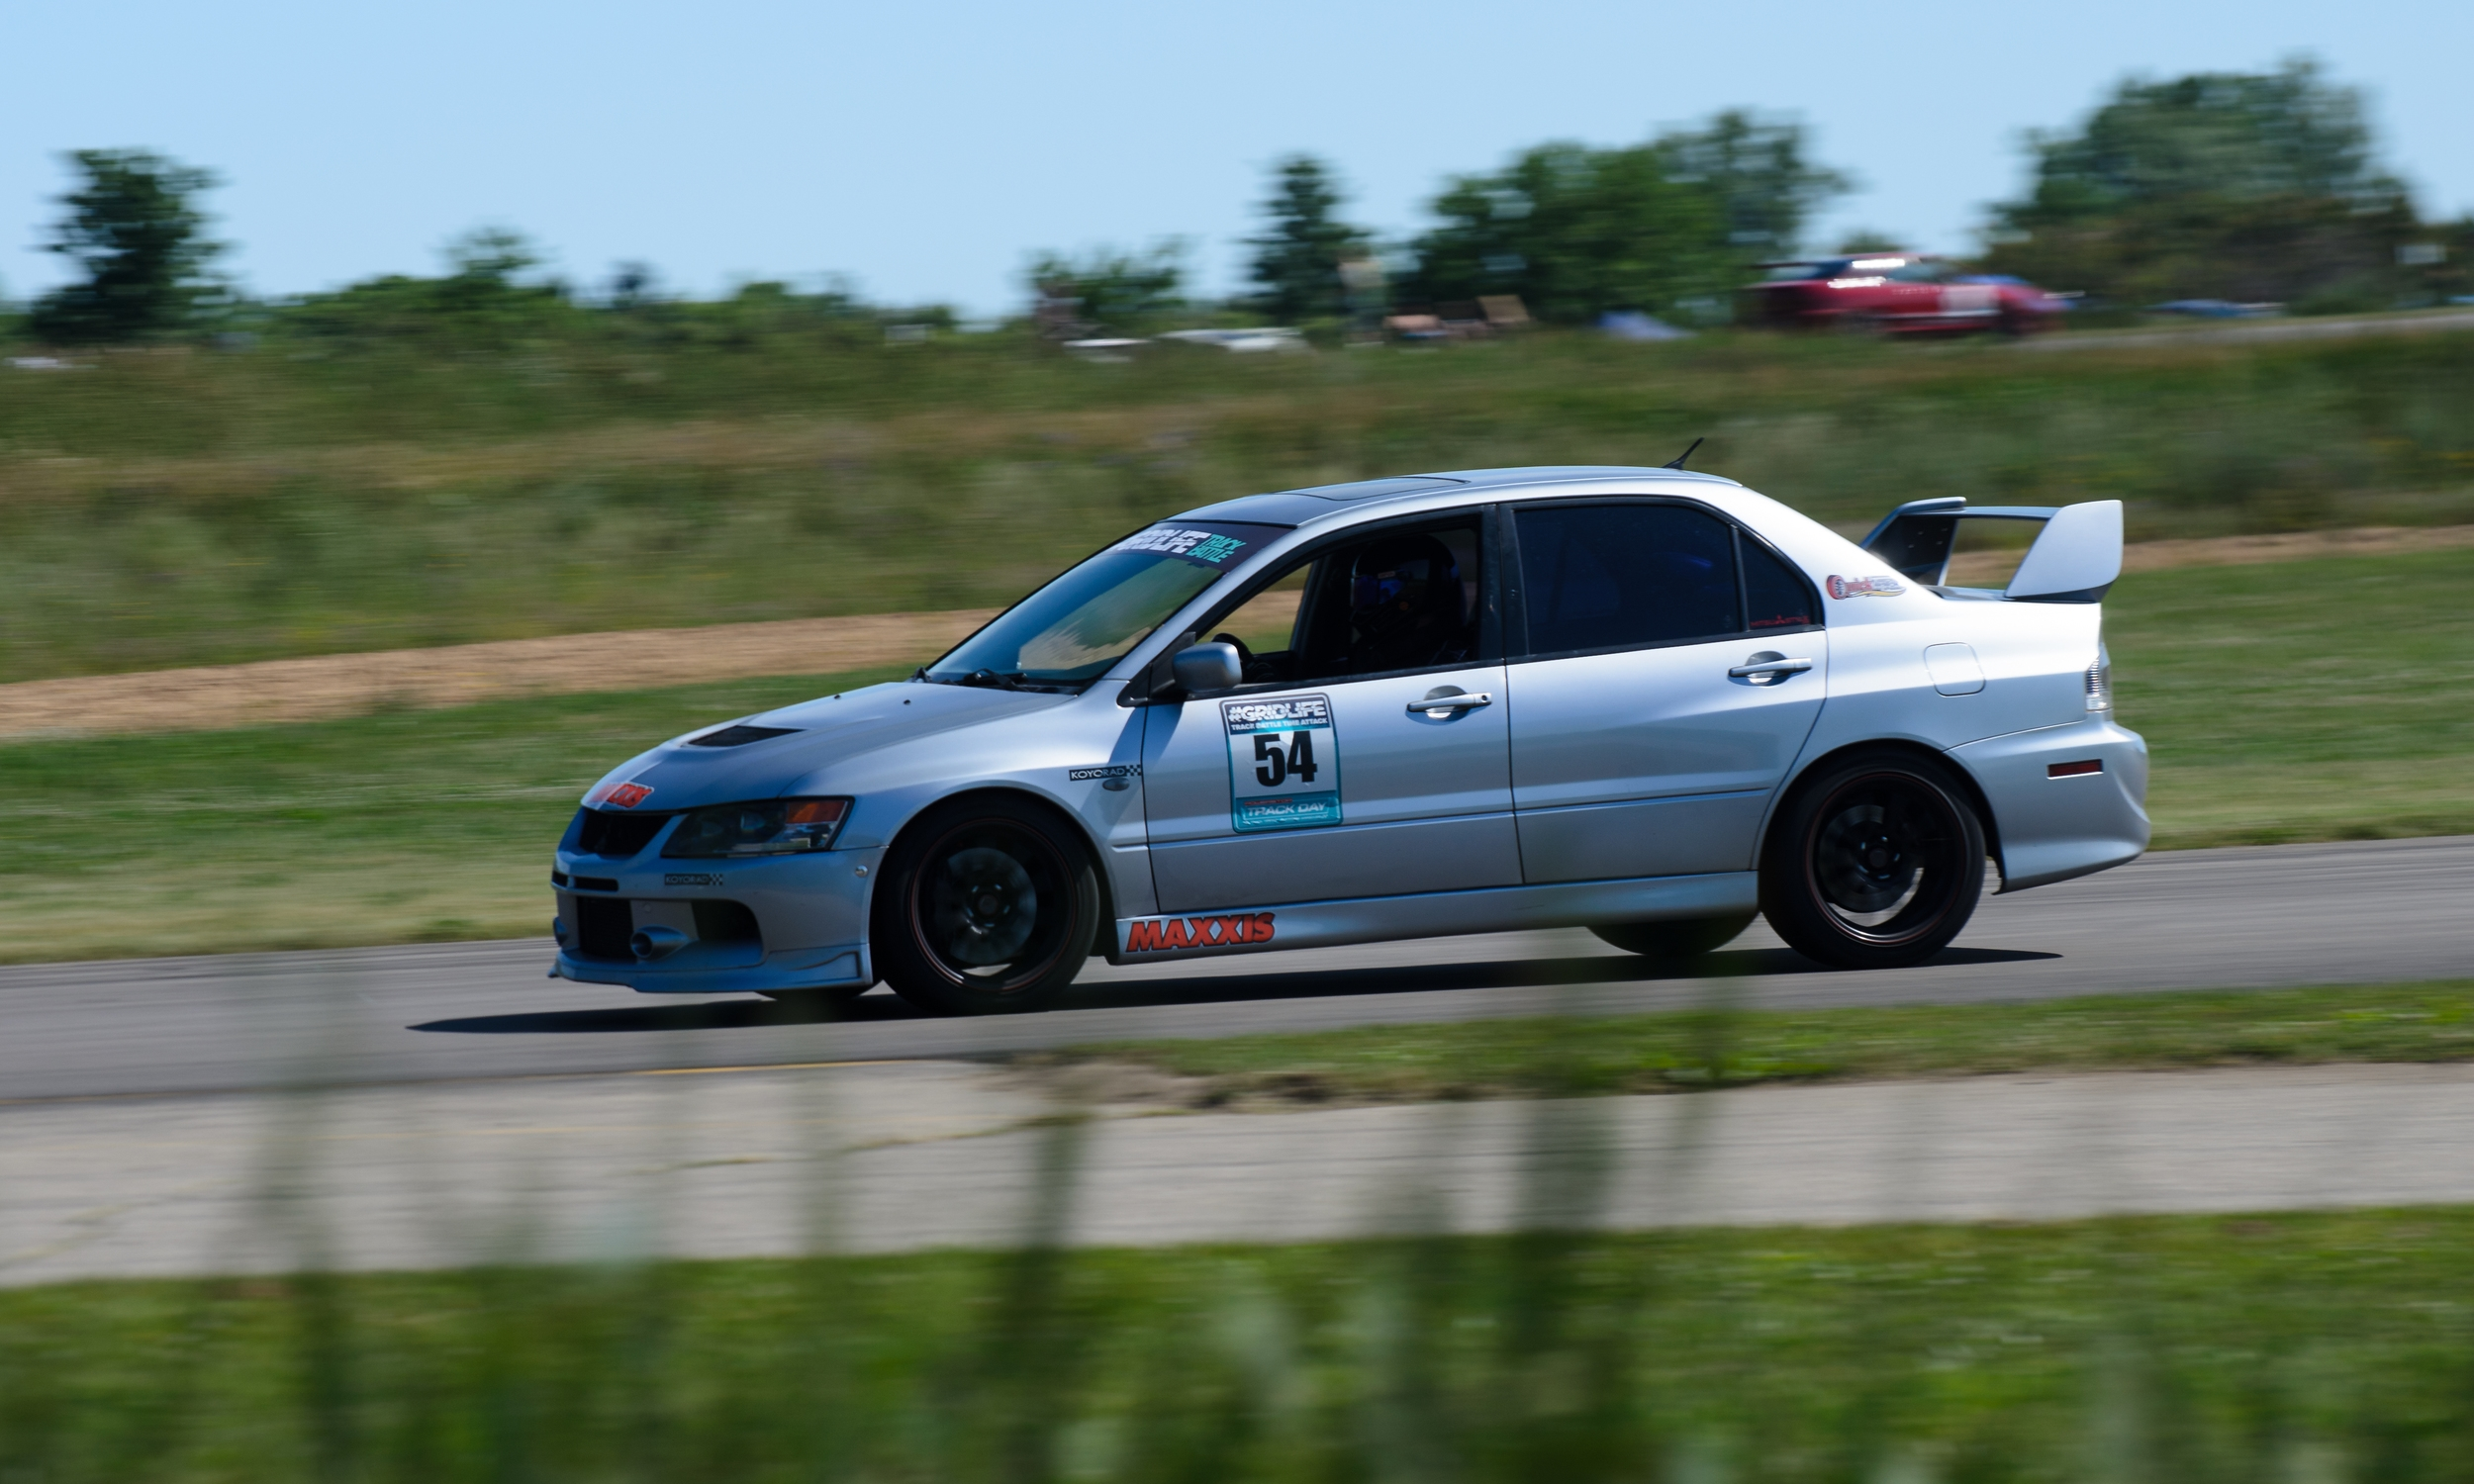 Charles an his Evo are one of the new faces we seen competing this season. taking home first place in AWD HPDE, we look to see him more this season. Official time: 1:47.185